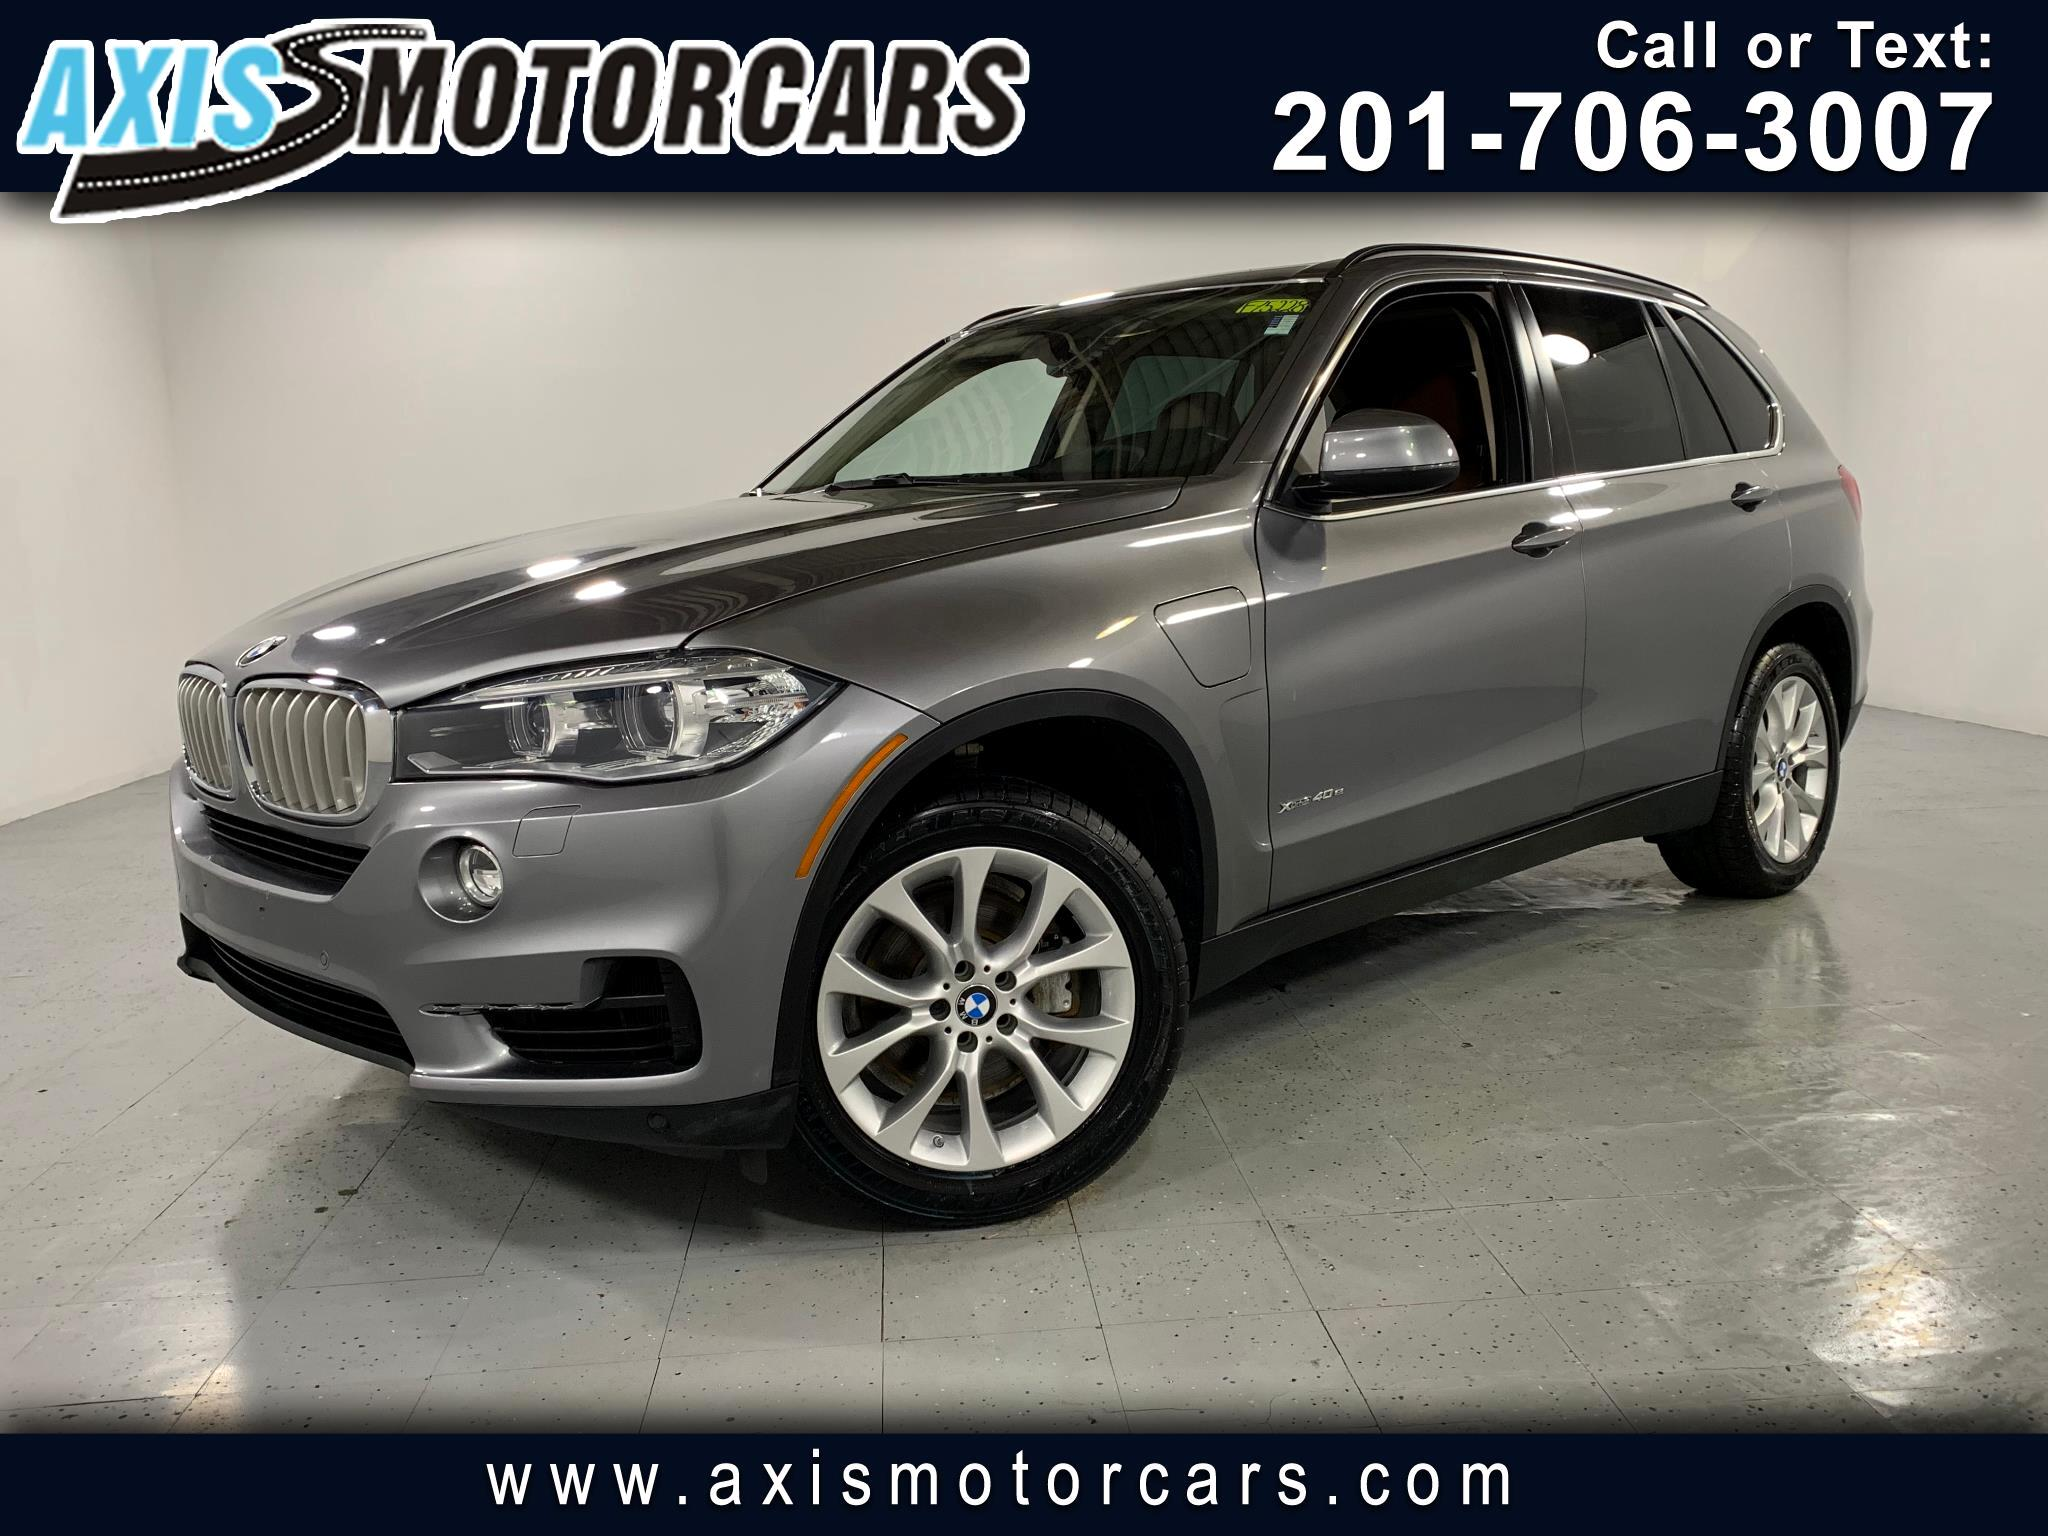 2016 BMW X5 eDrive Hybrid  xDrive40e  w/Navigation Panoramic Roof